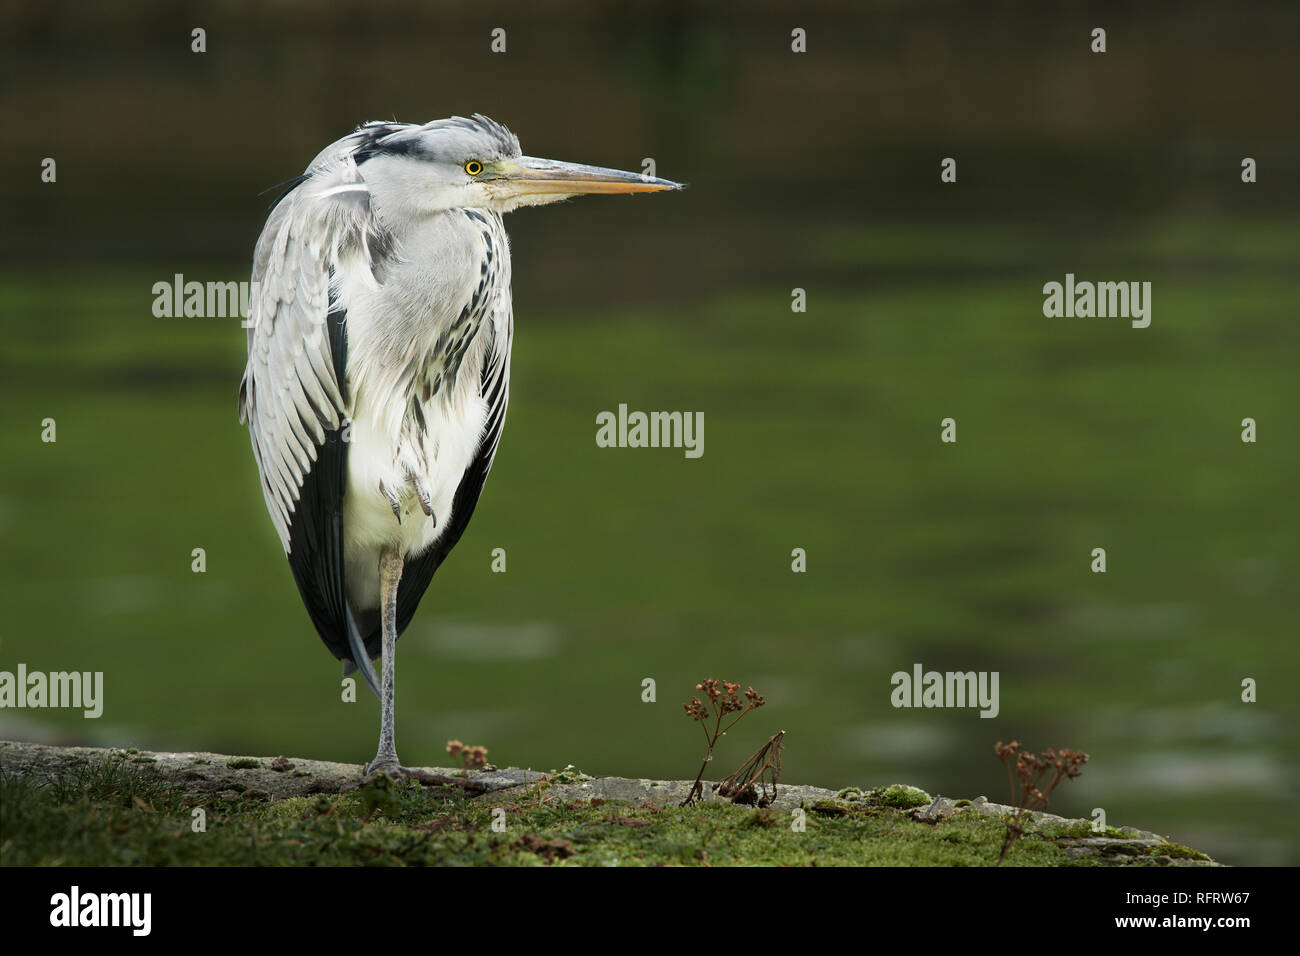 A grey heron stands crouched head into body on one leg at the side of a river waiting patiently and attentively. - Stock Image